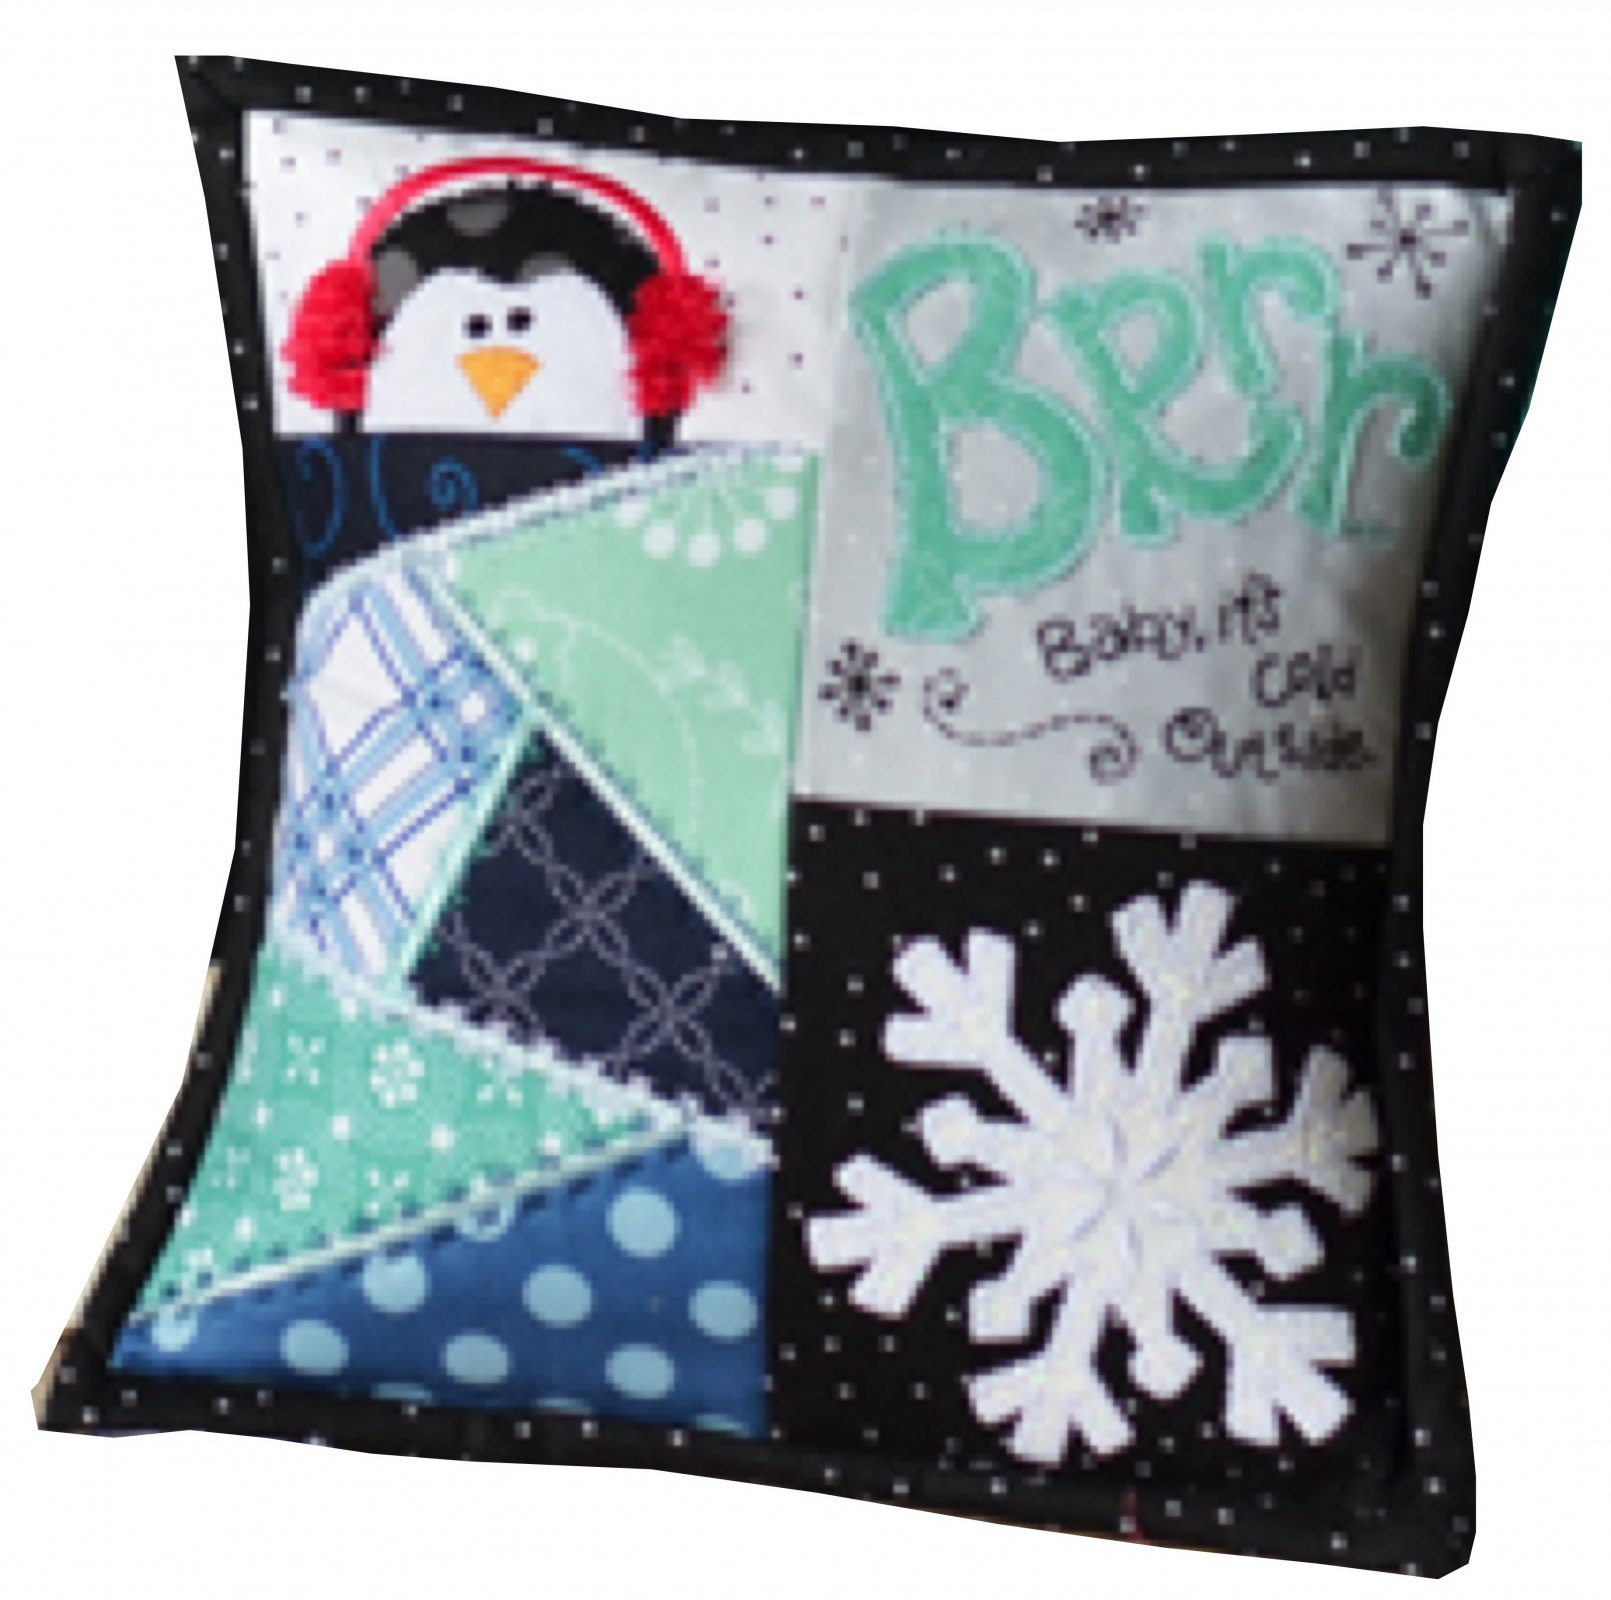 *BABY IT'S COLD OUTSIDE BENCH BUDDIES JANUARY KIT//SIZE 8x 8//KIMBERBELL